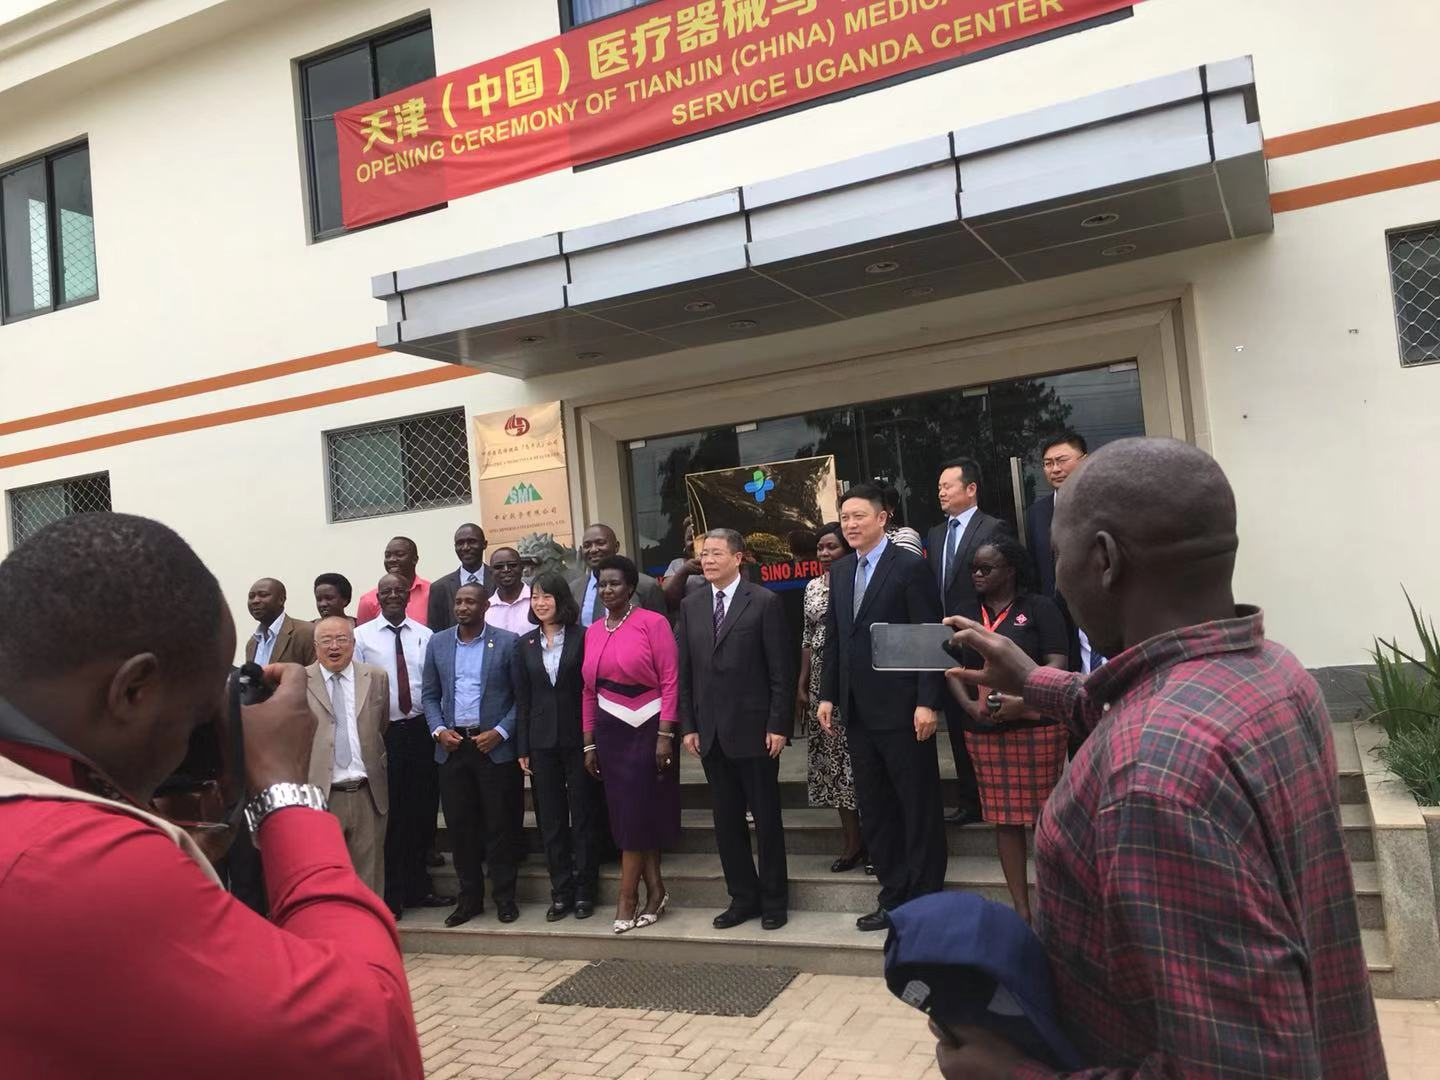 OPENING CEREMONY OF TIANJIN (CHINA) MEDICAL DEVICES EXHIBITION SALES AND SERVICE UGANDA CENTER